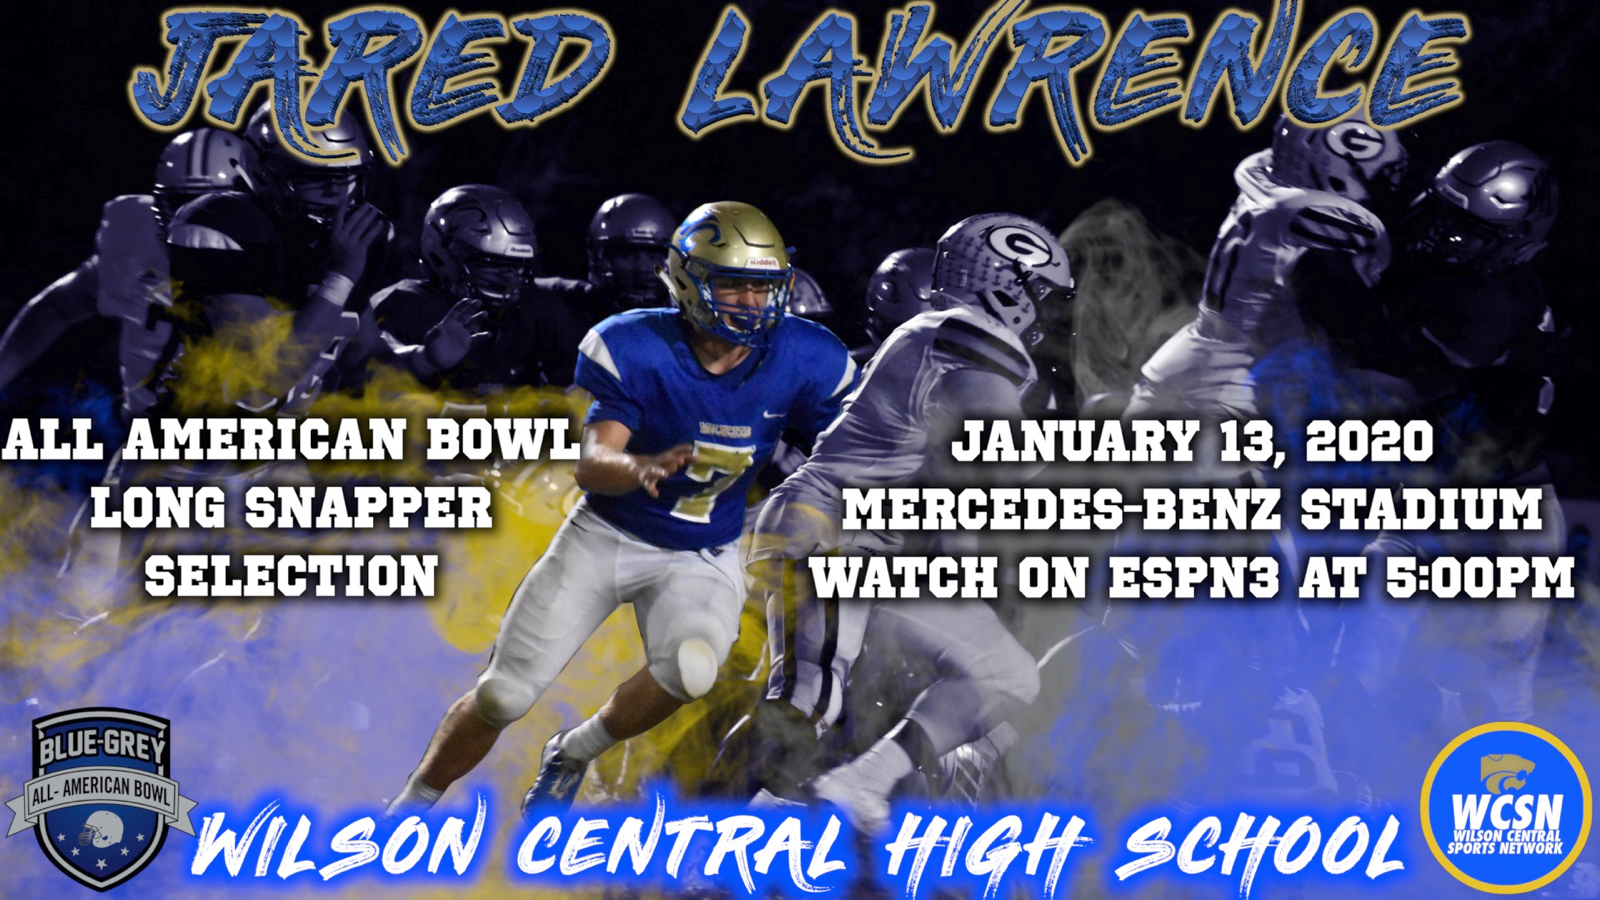 Fall-Football–5-Star Long Snapper Jared Lawrence Selected to Play in All American Bowl